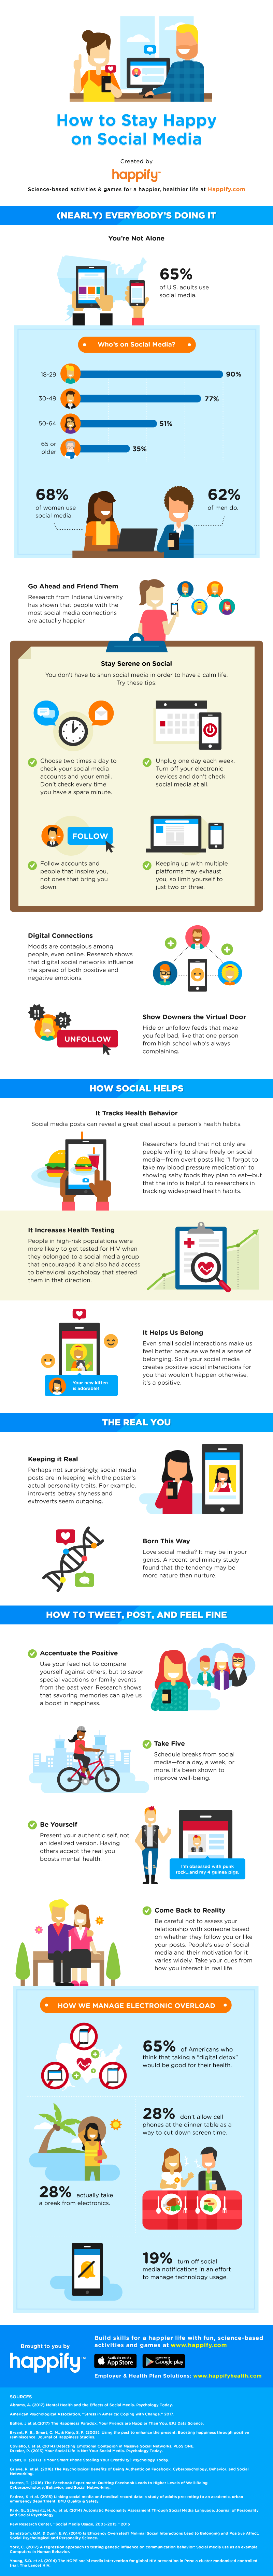 How to stay happy on Social Media [infographic]